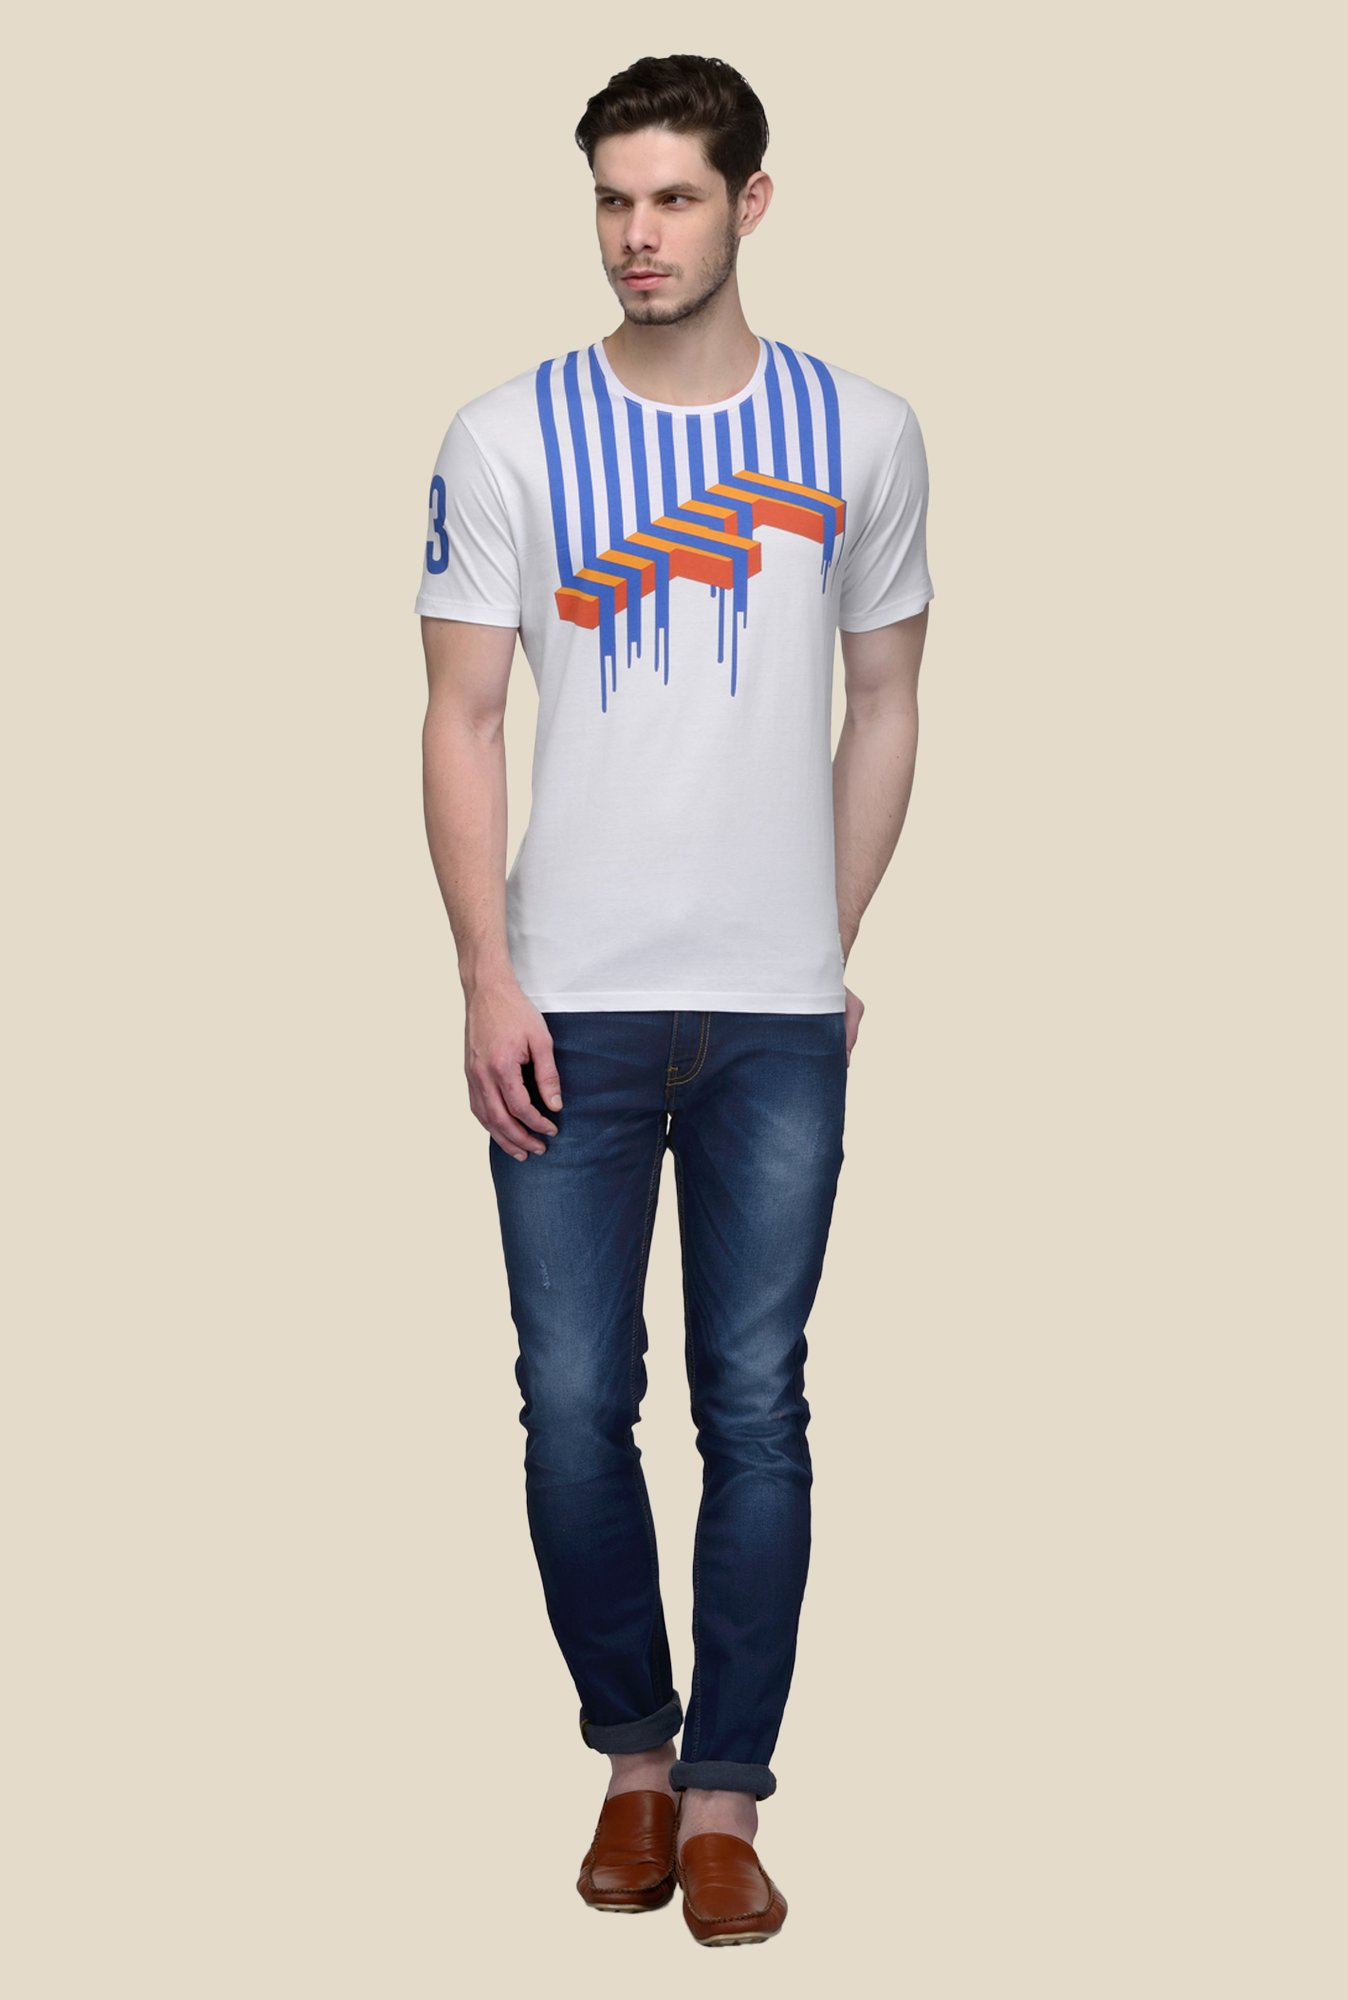 United Colors of Benetton White Crew Neck T-shirt